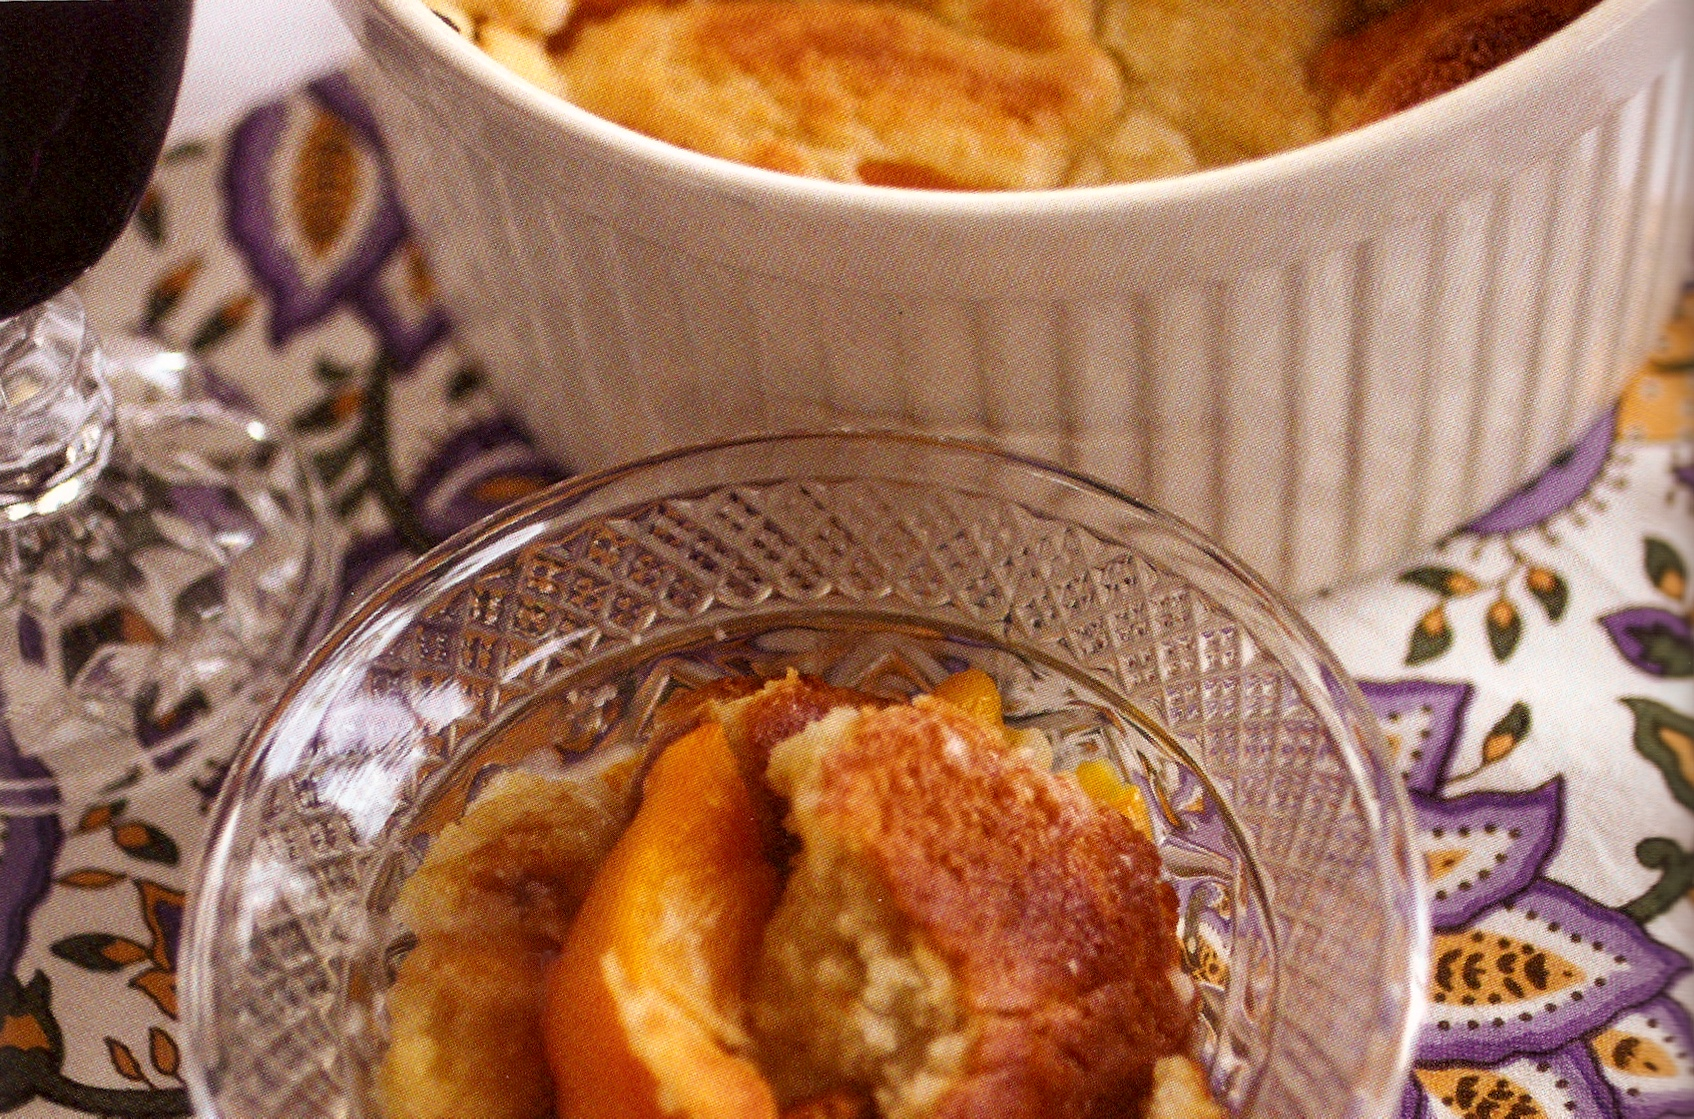 Poufed Peach Cobbler picture